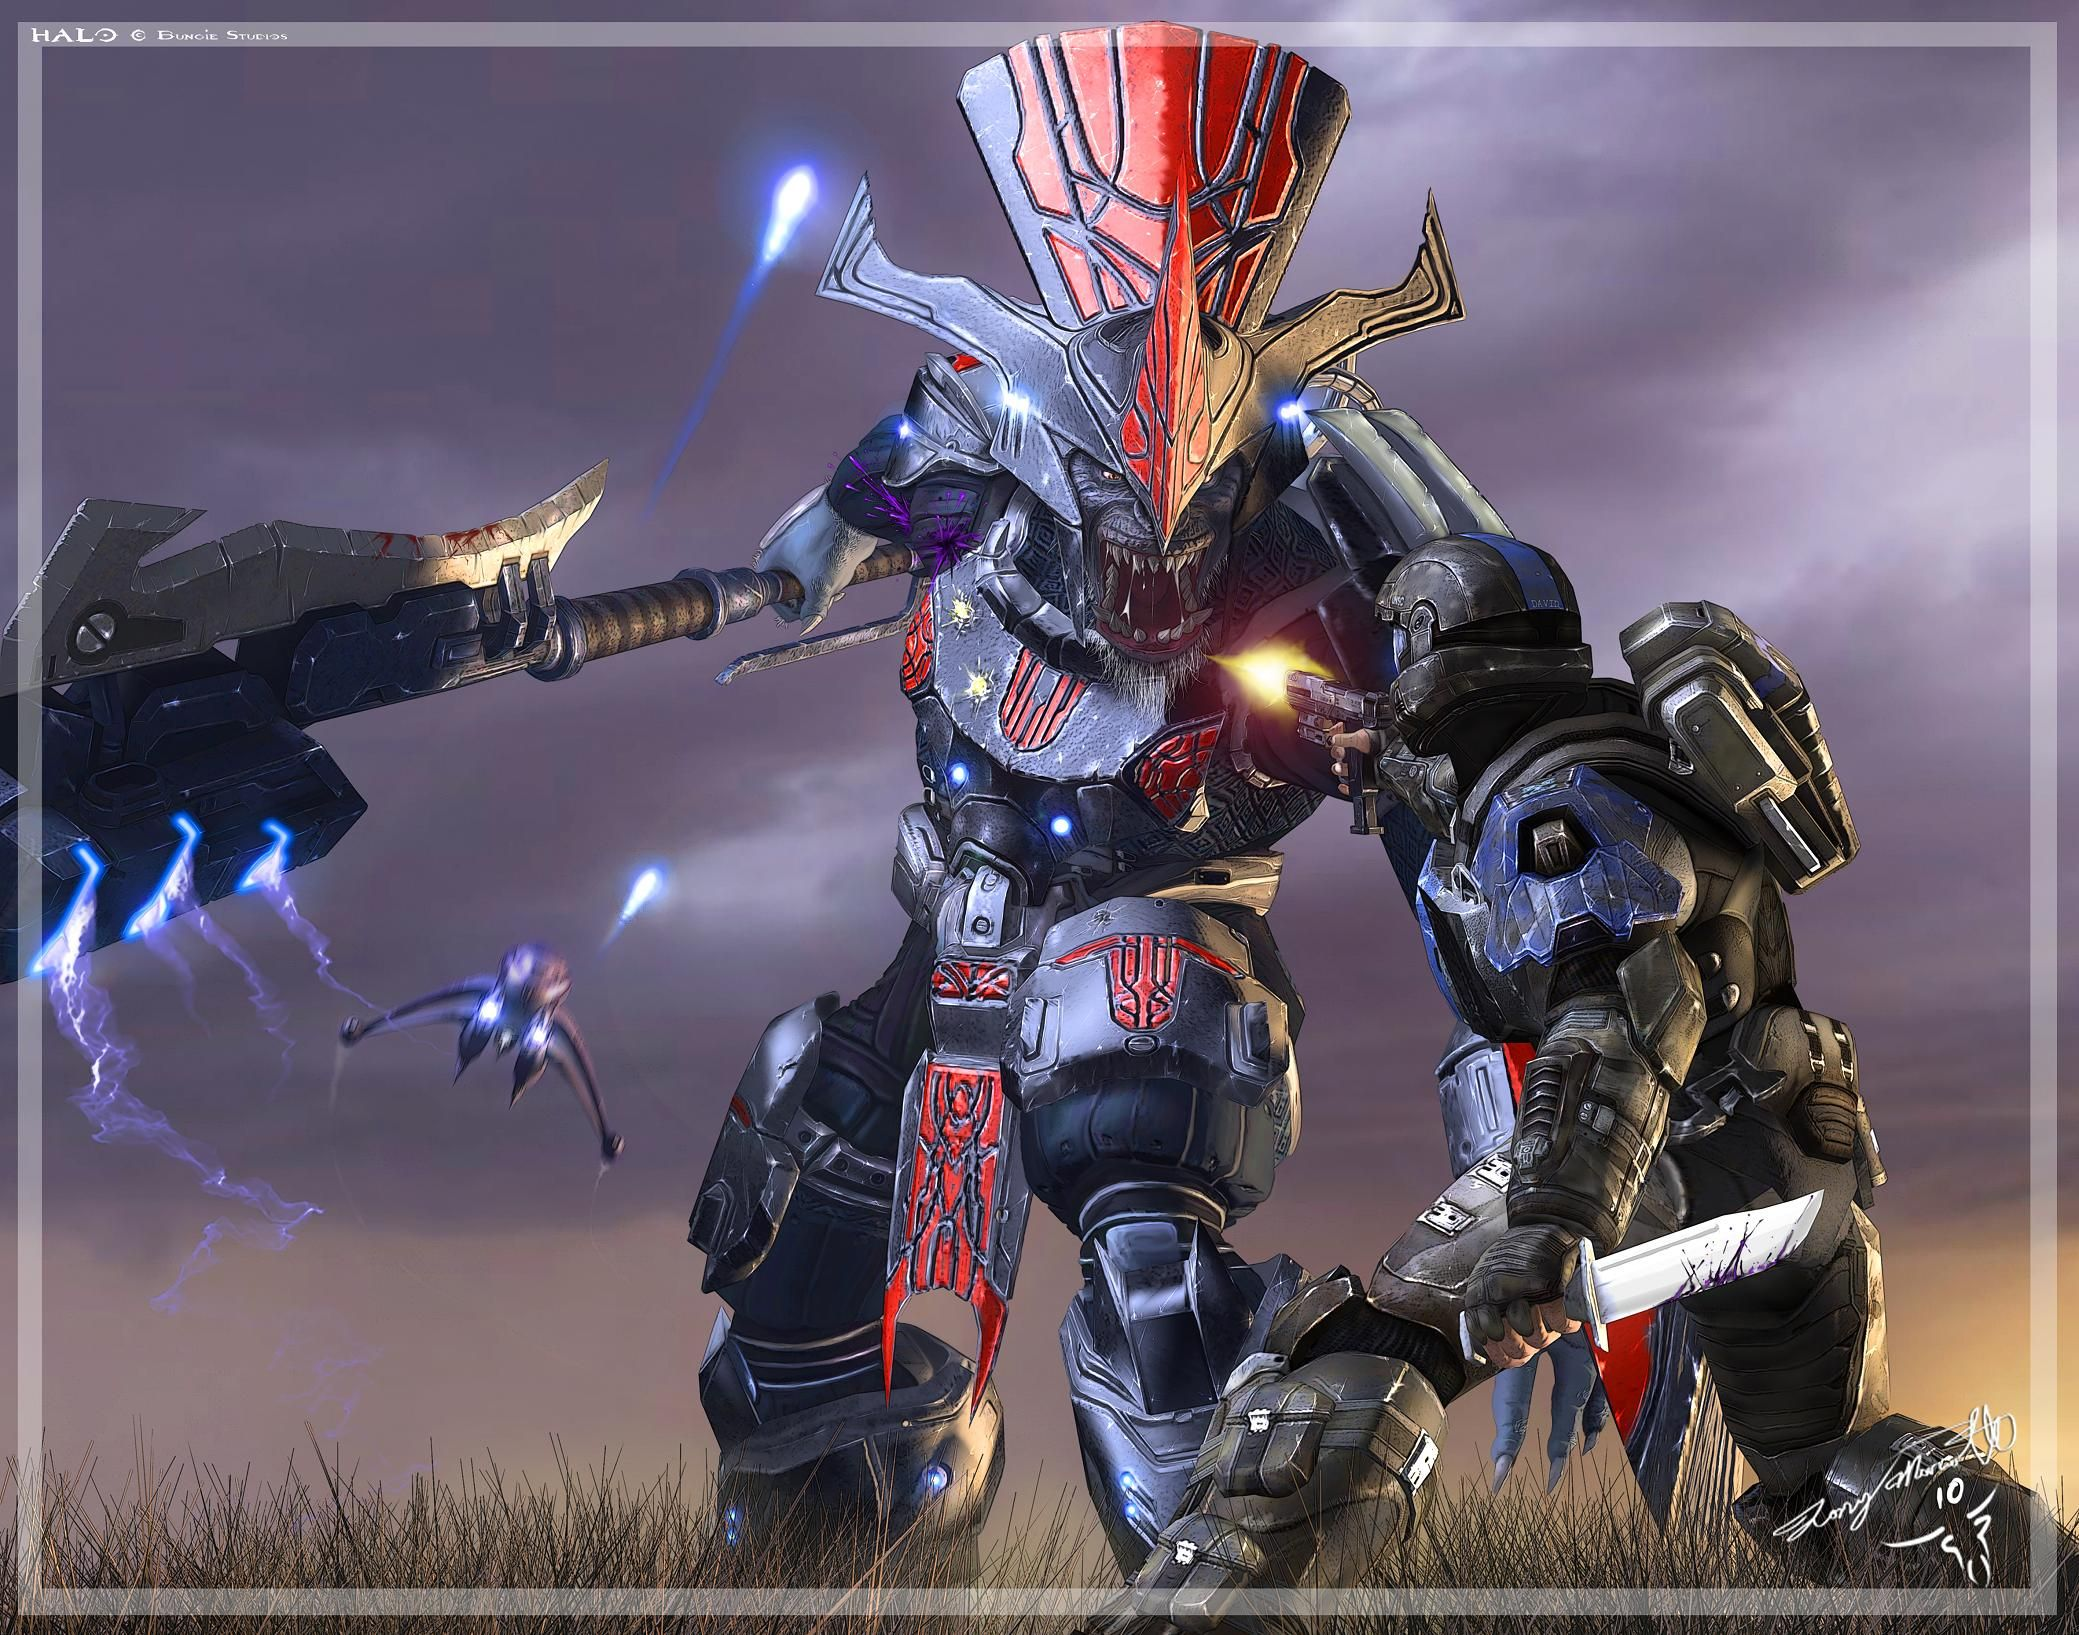 Brutes from Halo … Halo video game, Halo, Halo series